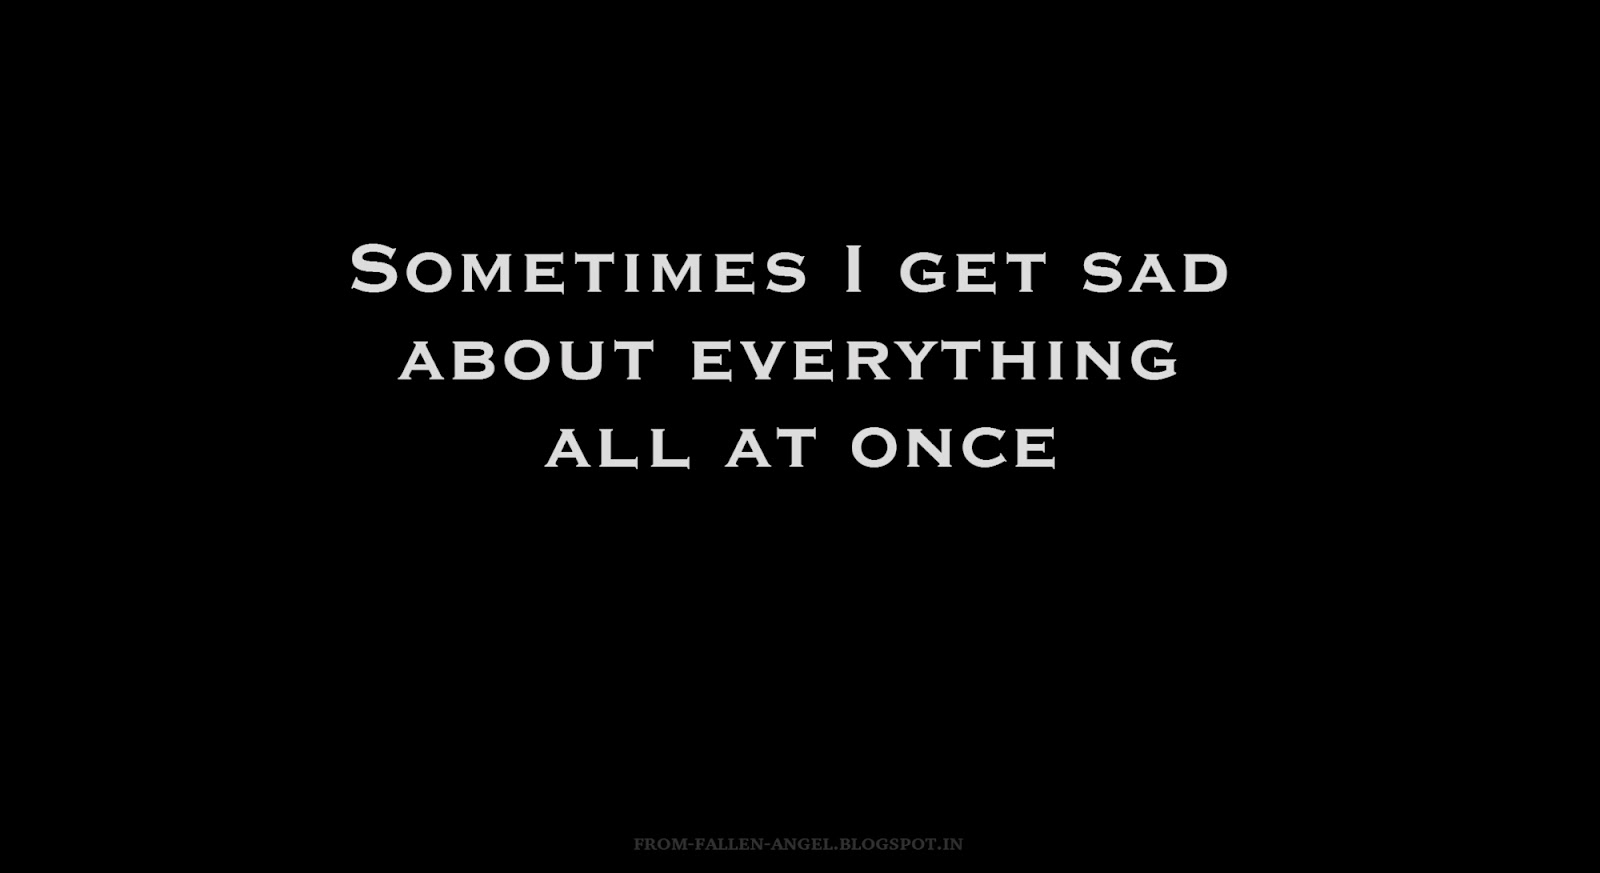 Sometimes I get sad about everything all at once